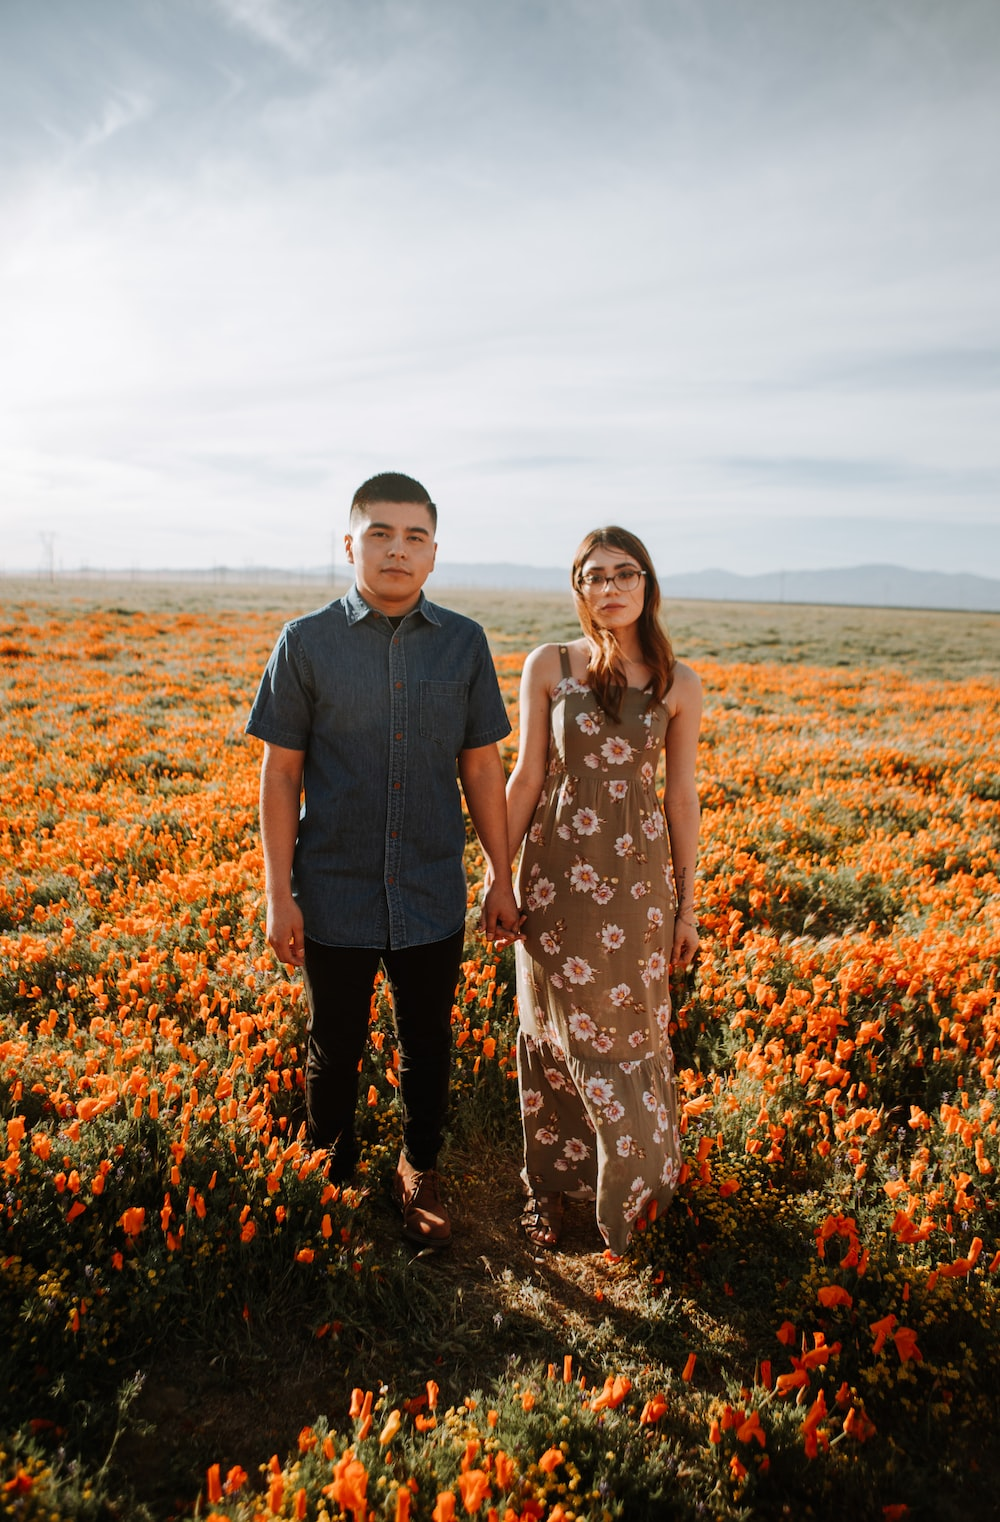 man and woman standing on flower field during daytime